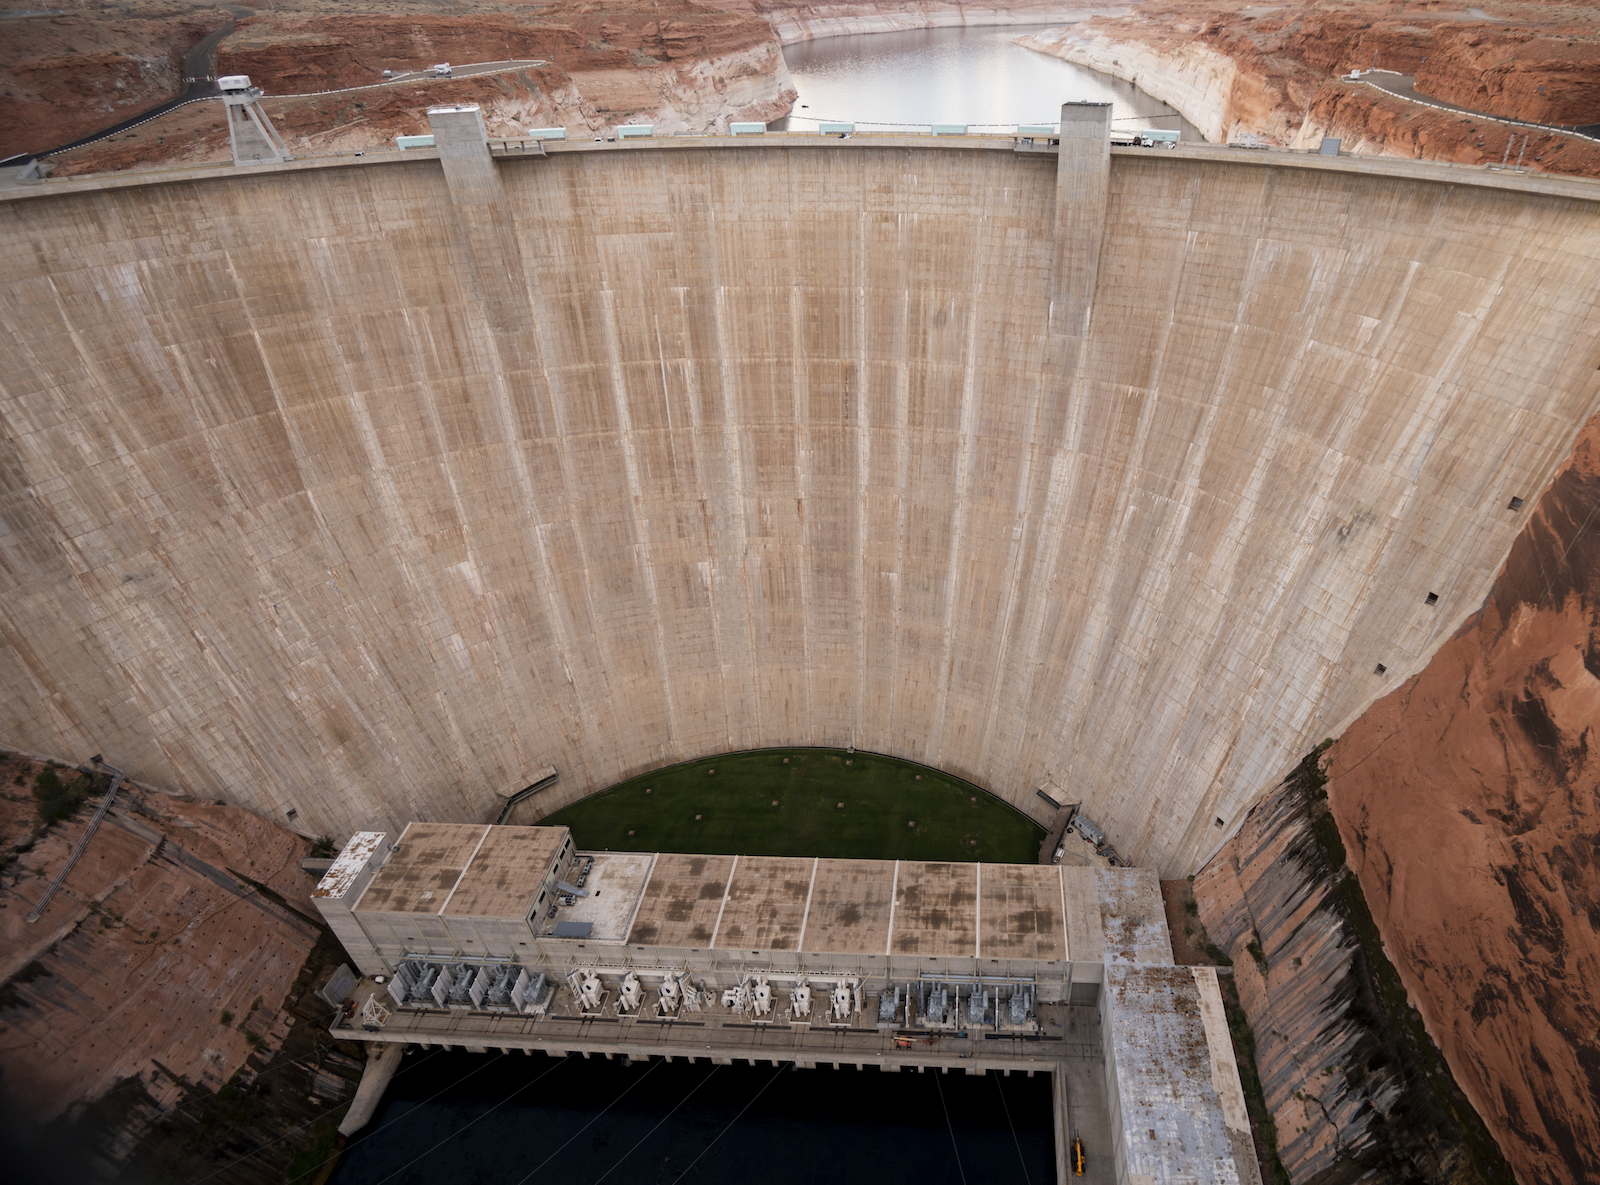 a large dam holding back a river